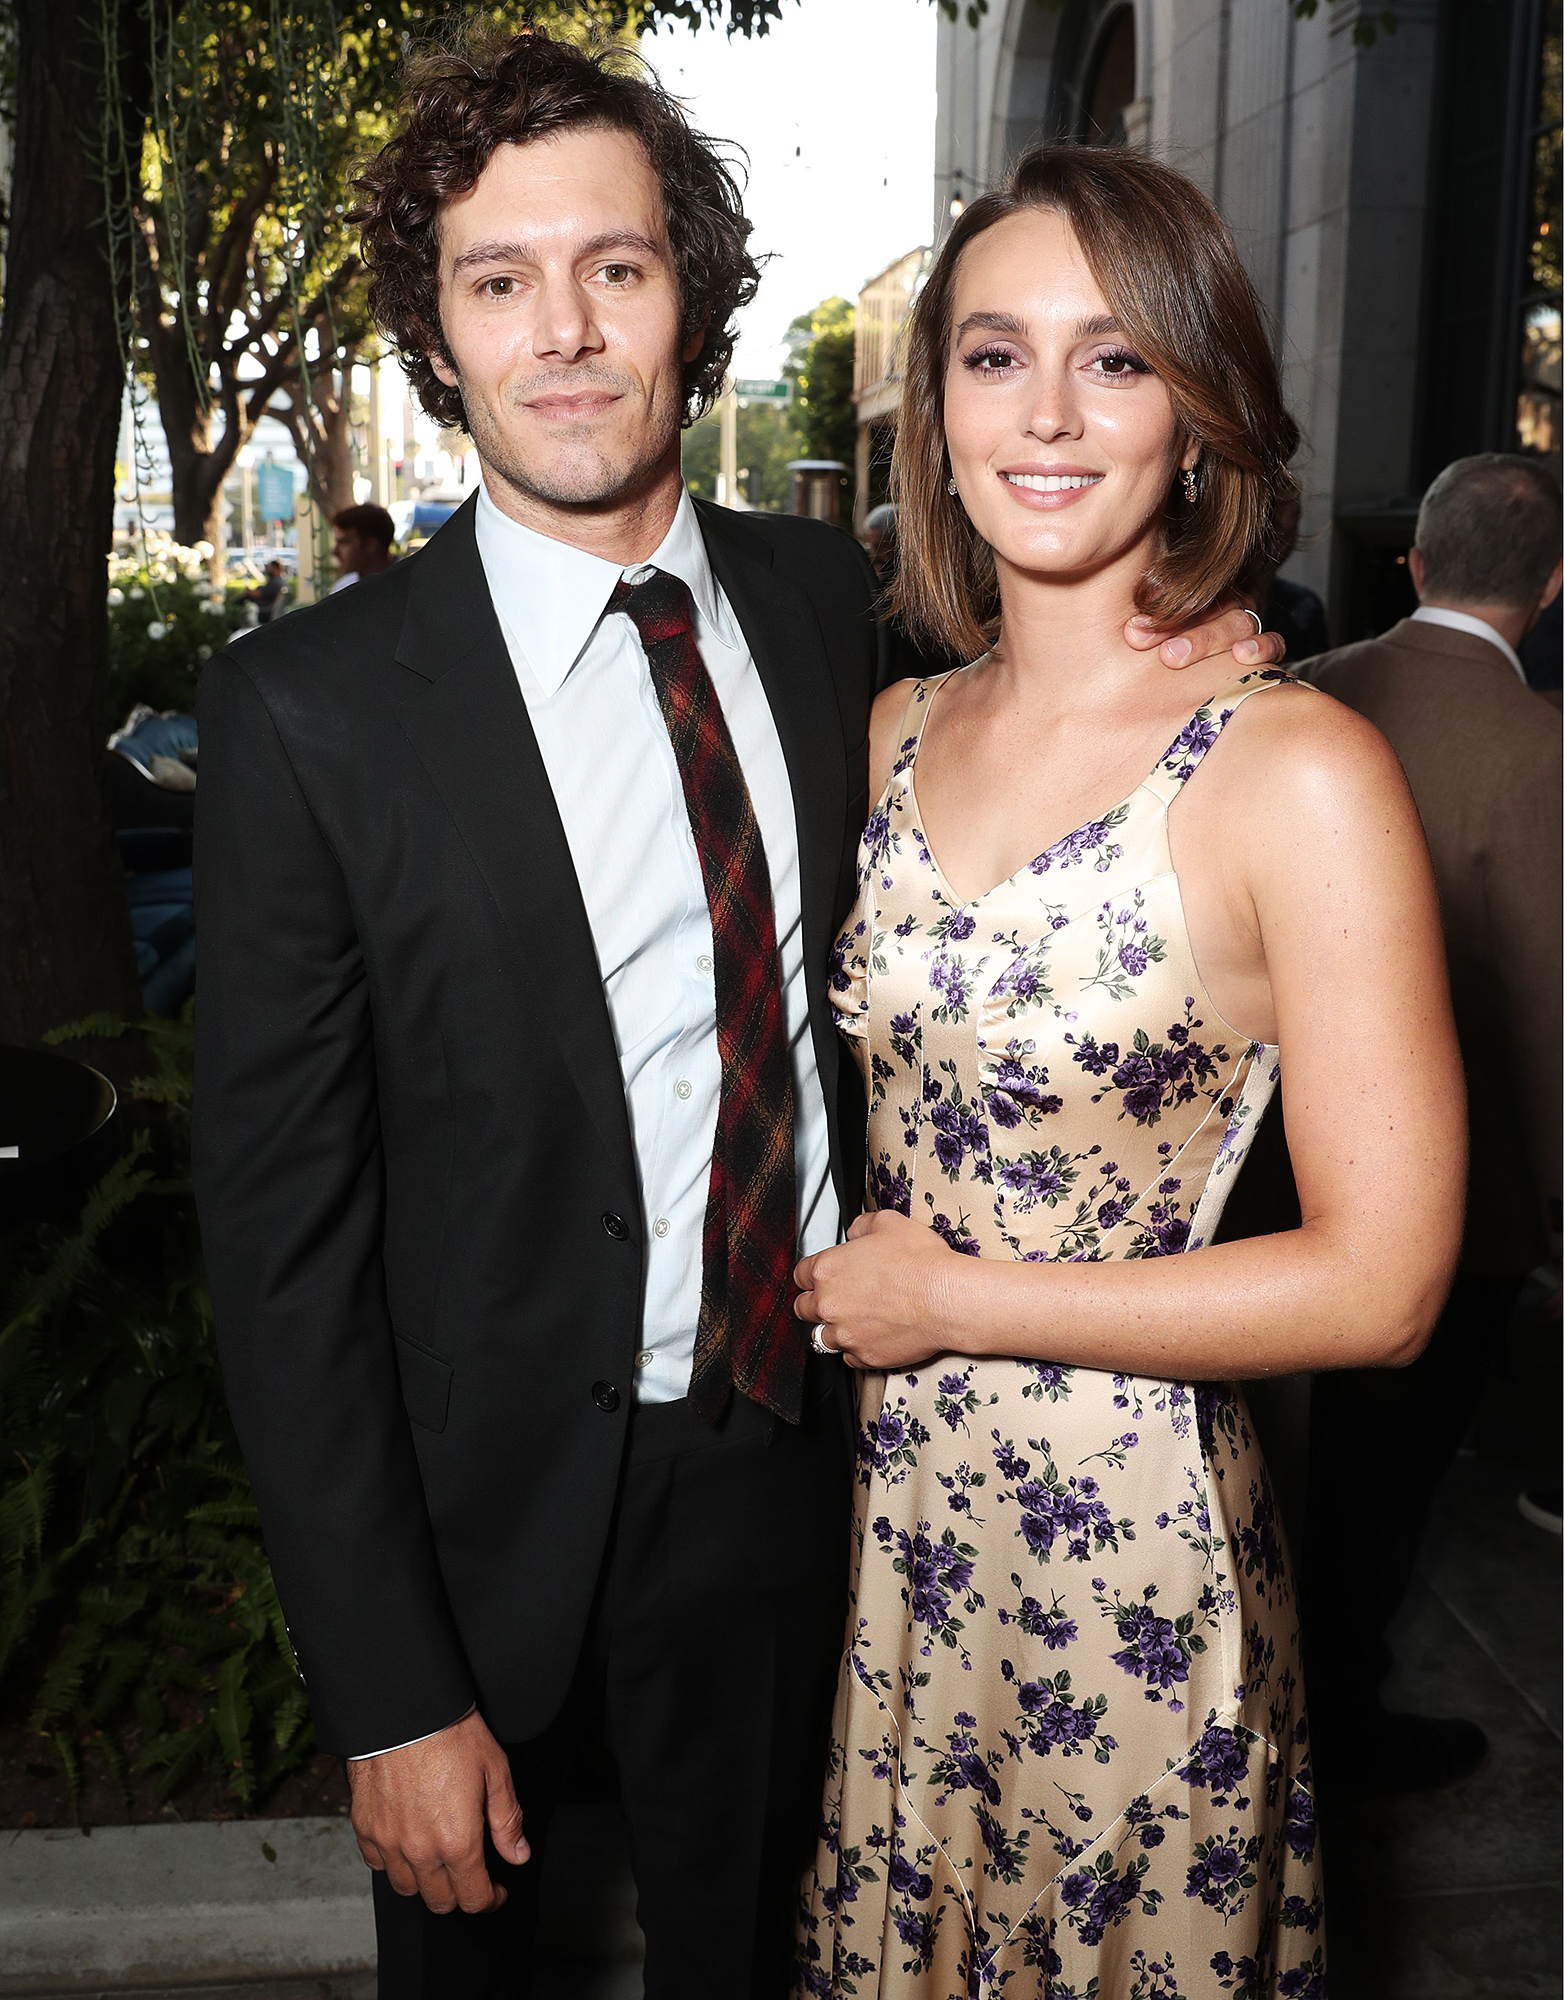 Adam-Brody-and-Leighton-Meester-expecting